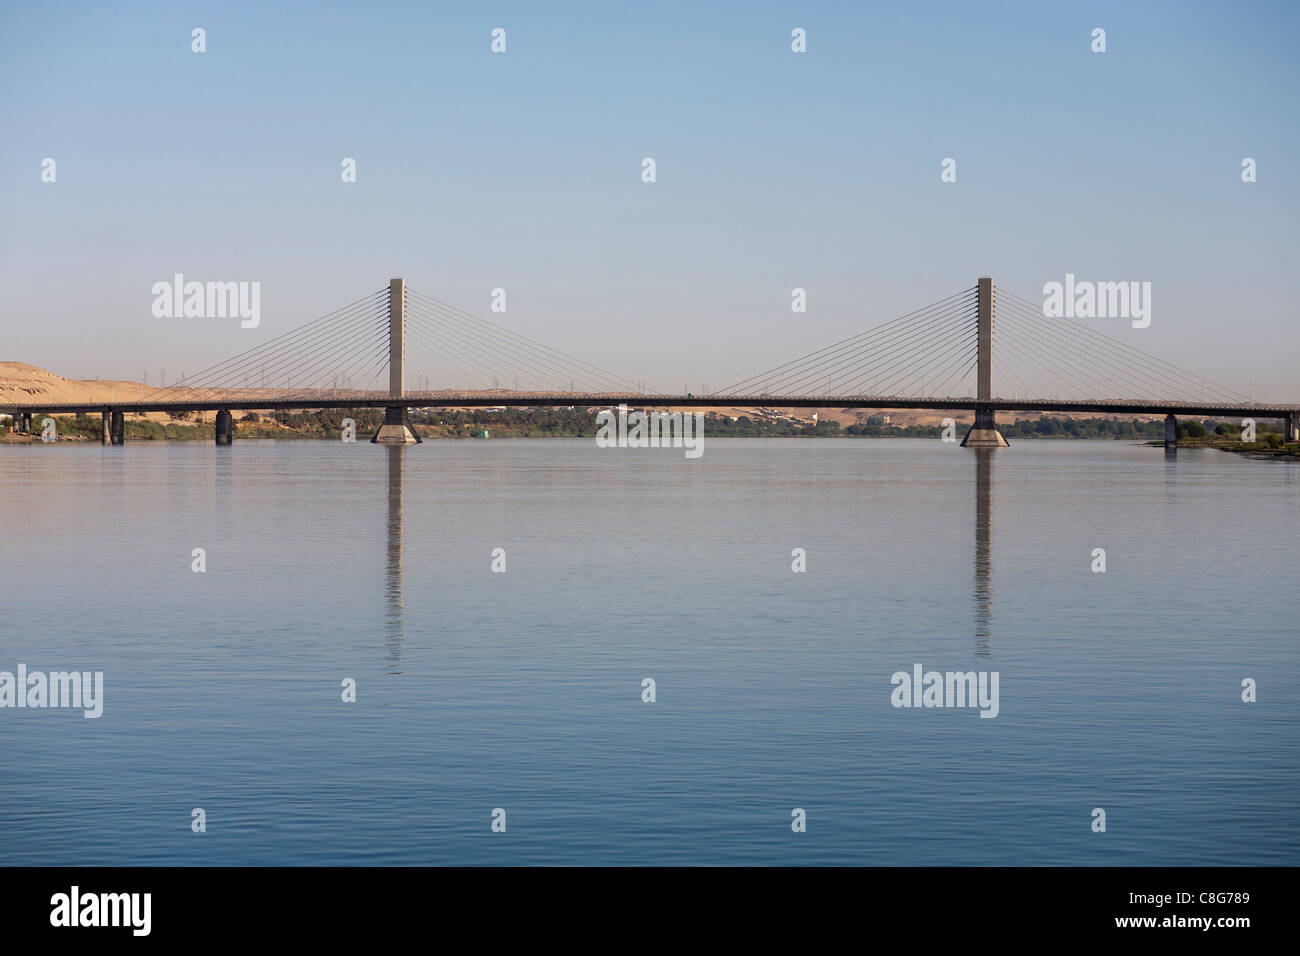 Long shot of the Aswan suspension bridge resembling a flat boat with two sails  spanning the river Nile, Egypt - Stock Image